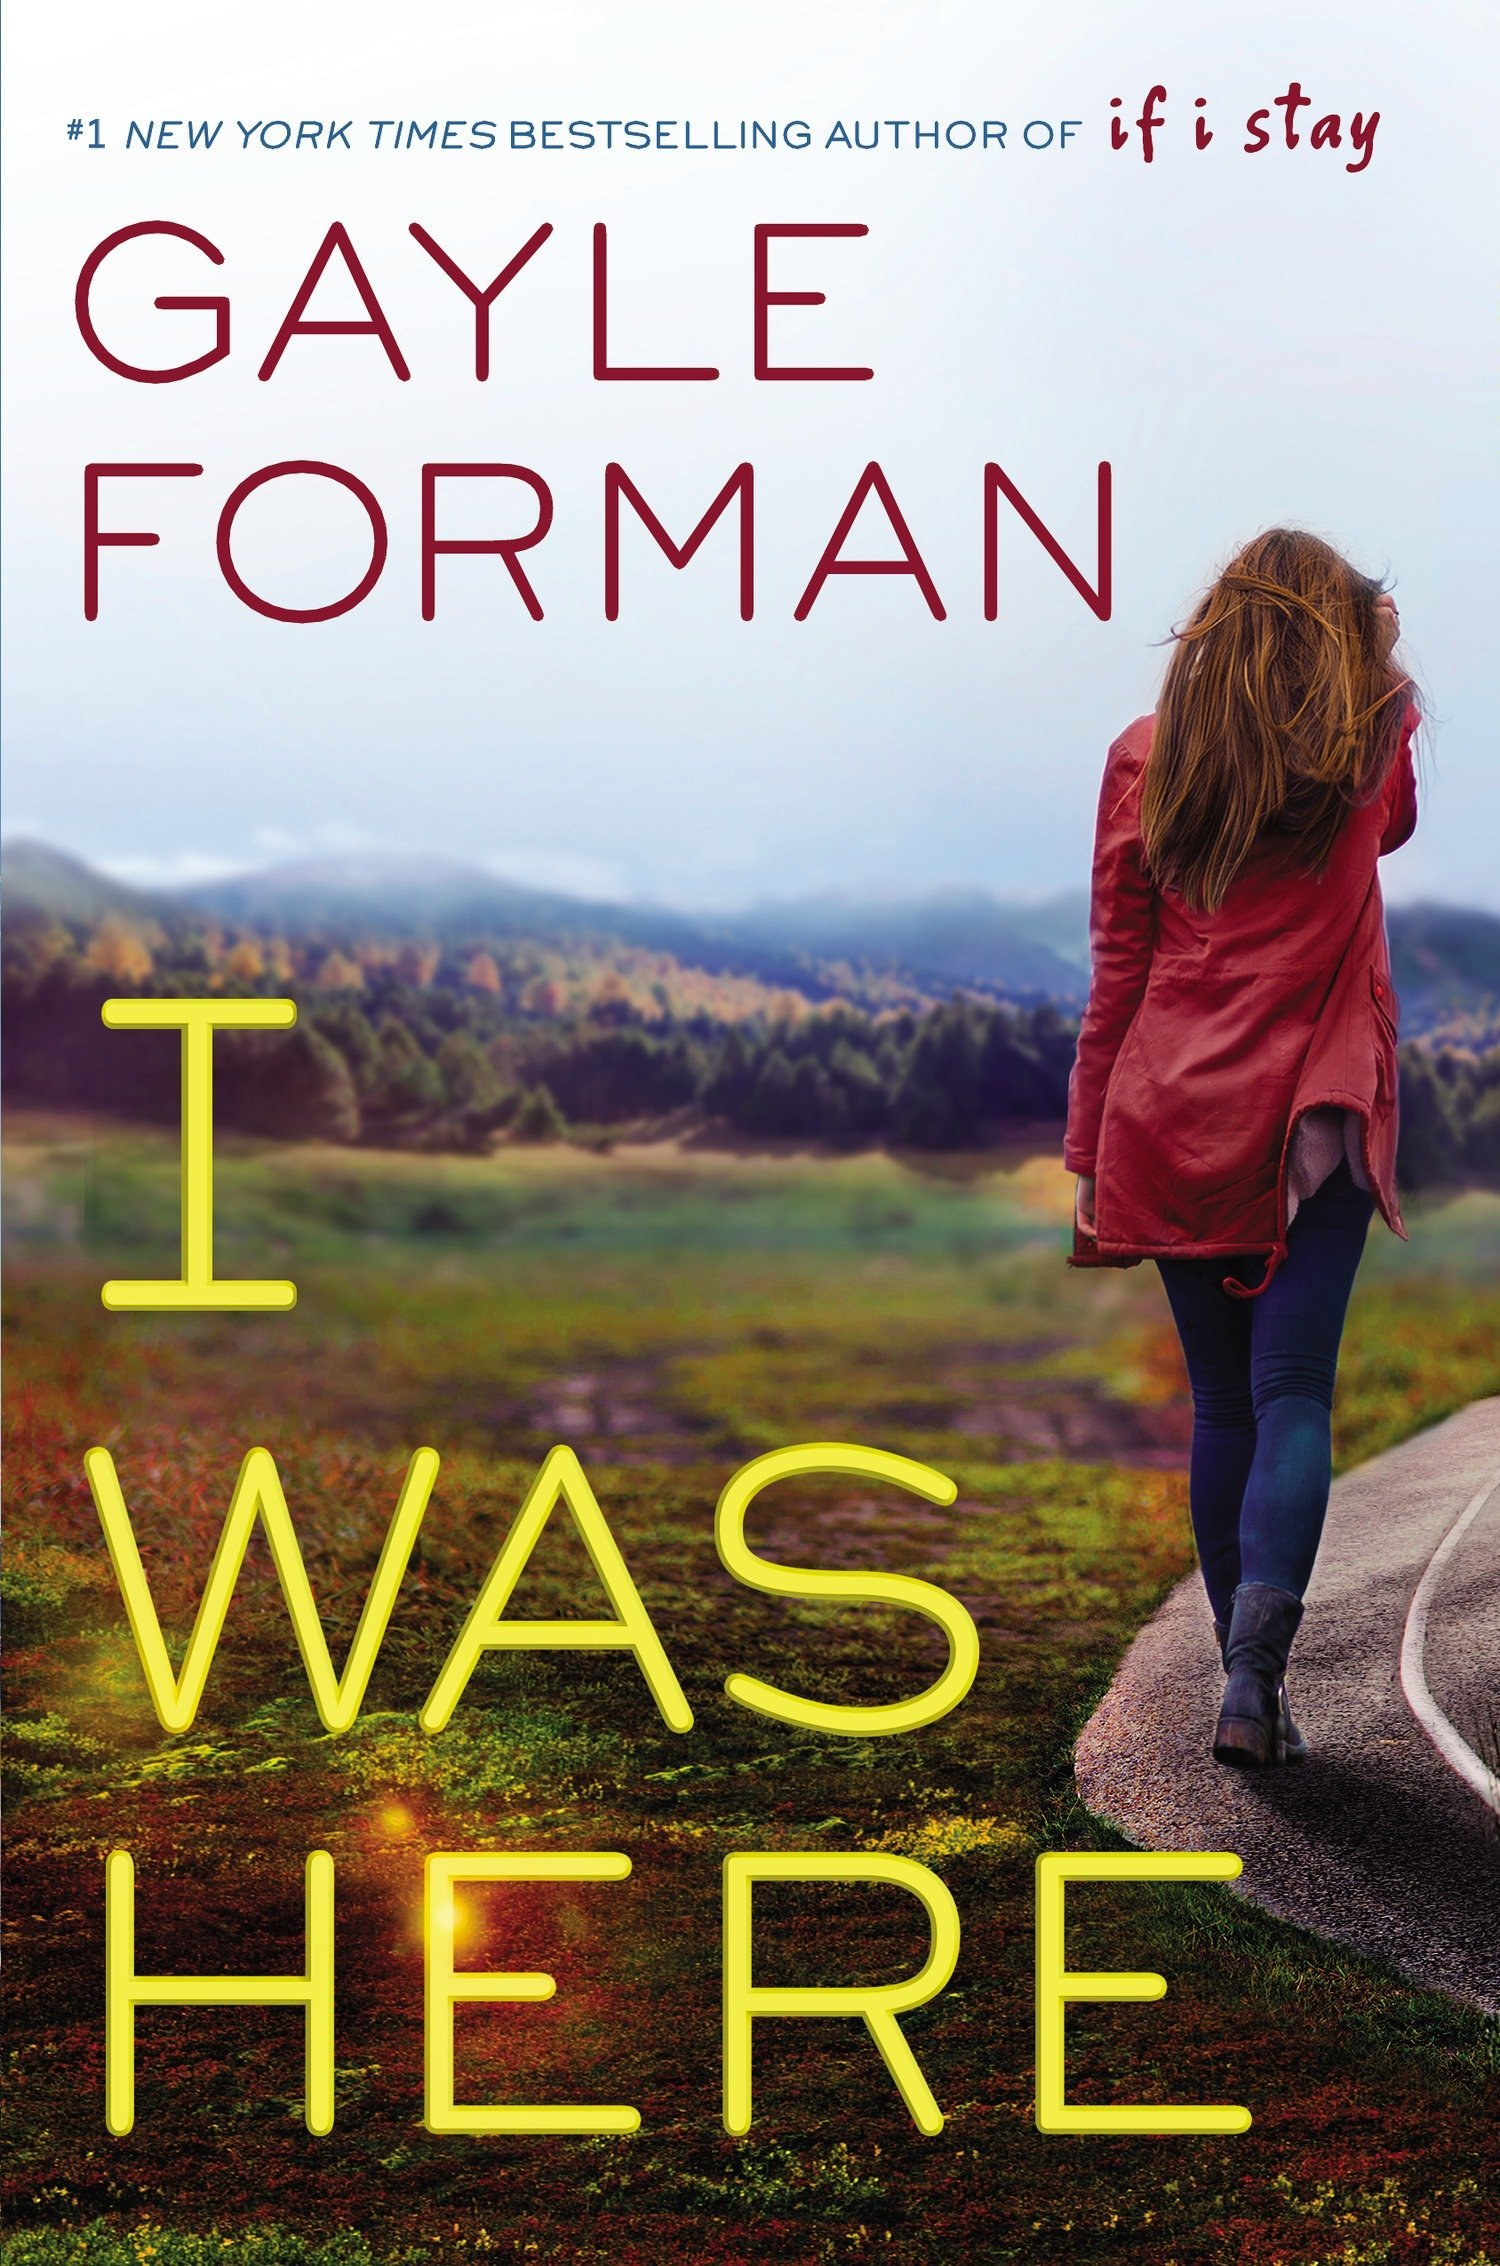 Amazon.com: I Was Here (9780451471475): Forman, Gayle: Books